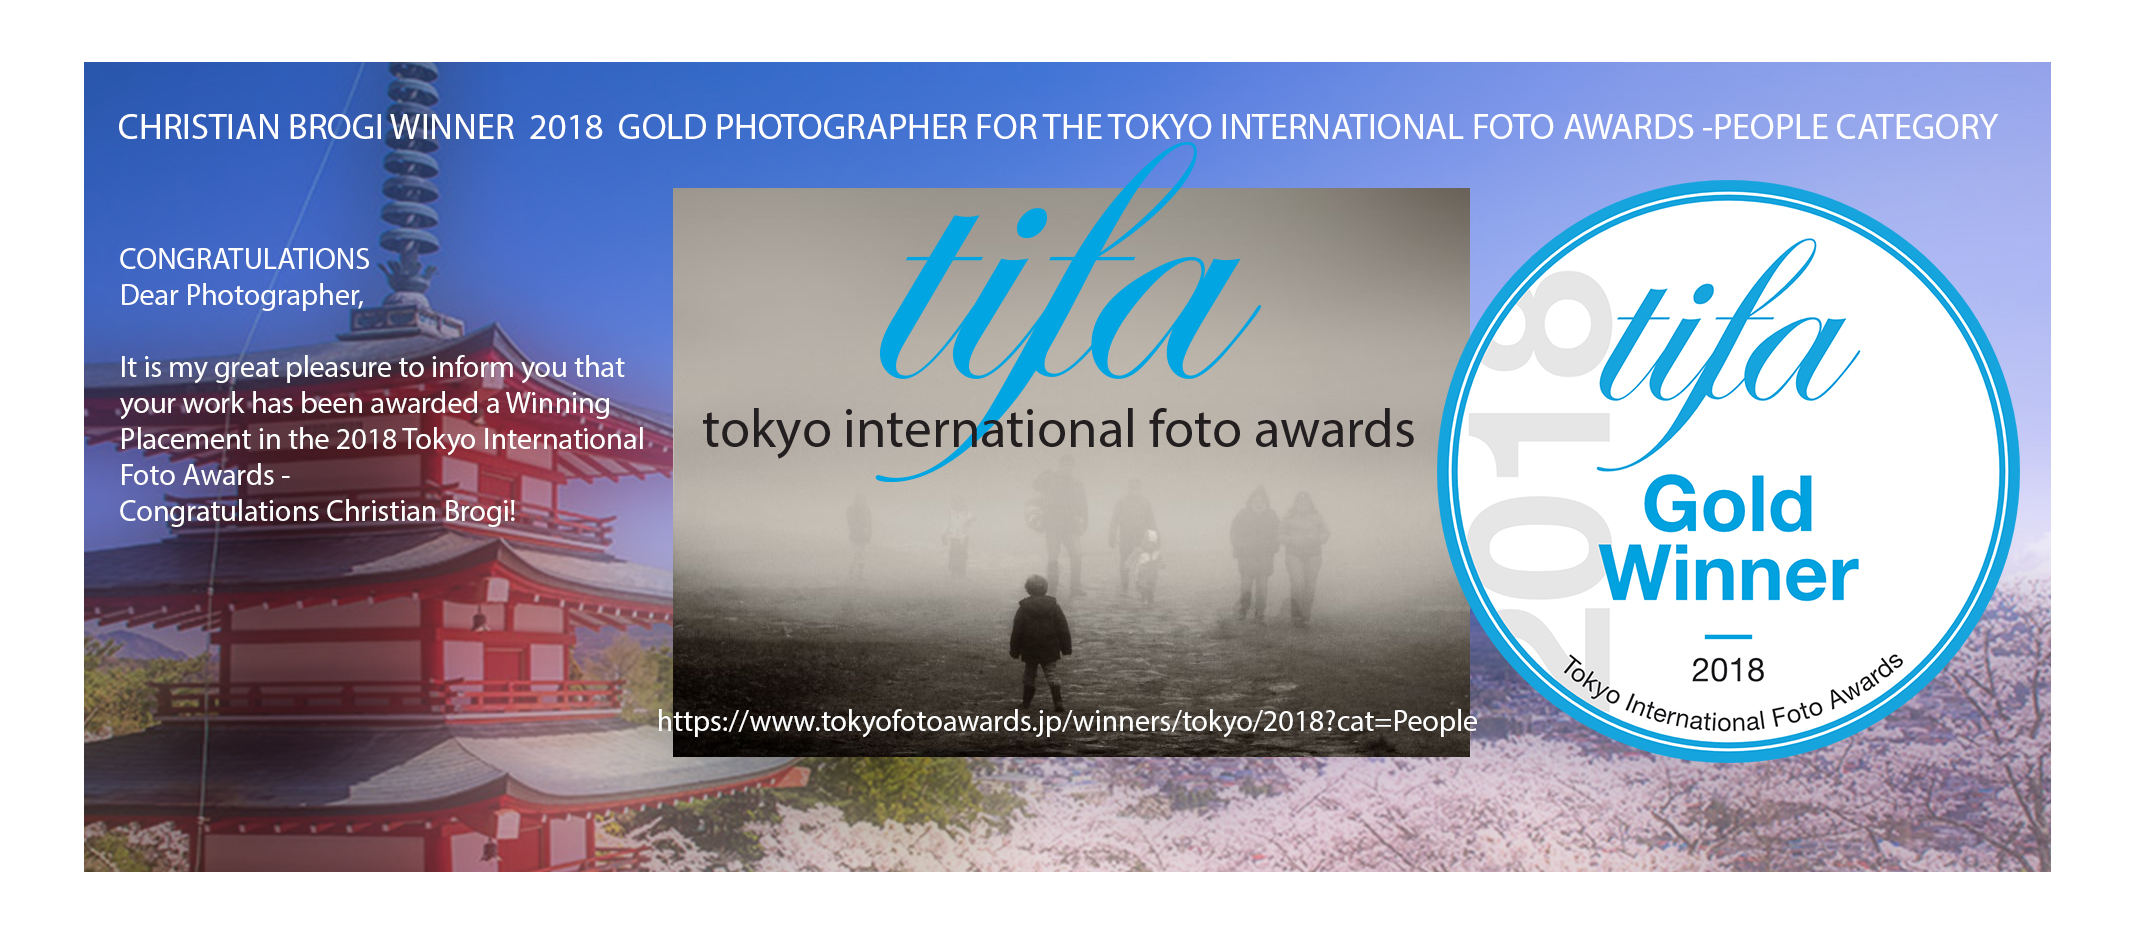 TOKYOFOTOAWARDS – WINNER GOLD Christian Brogi